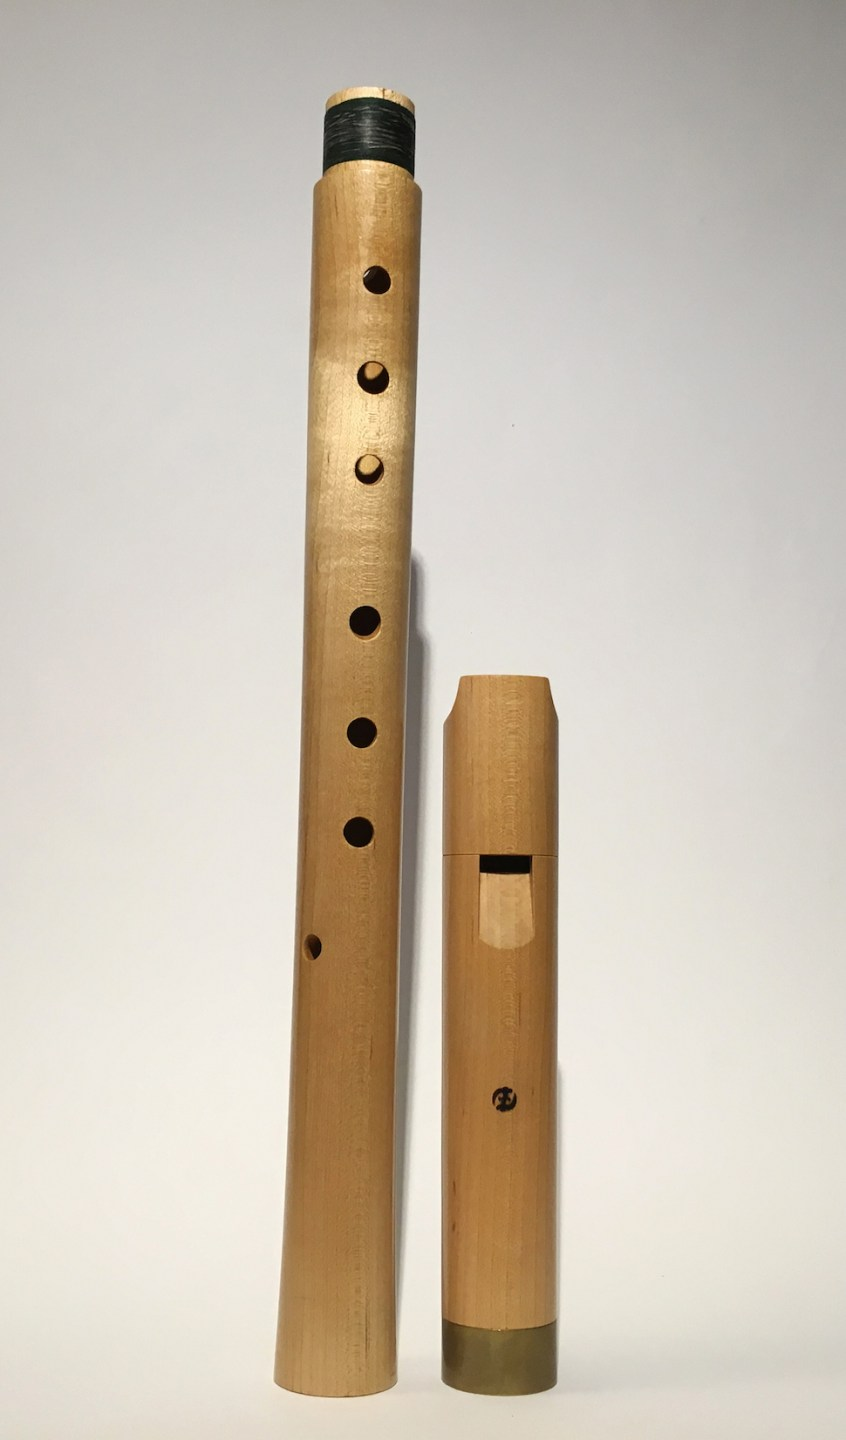 Ganassi-tenor-recorder-466-by-Monika-Musch-recorders-for-sale-com-00